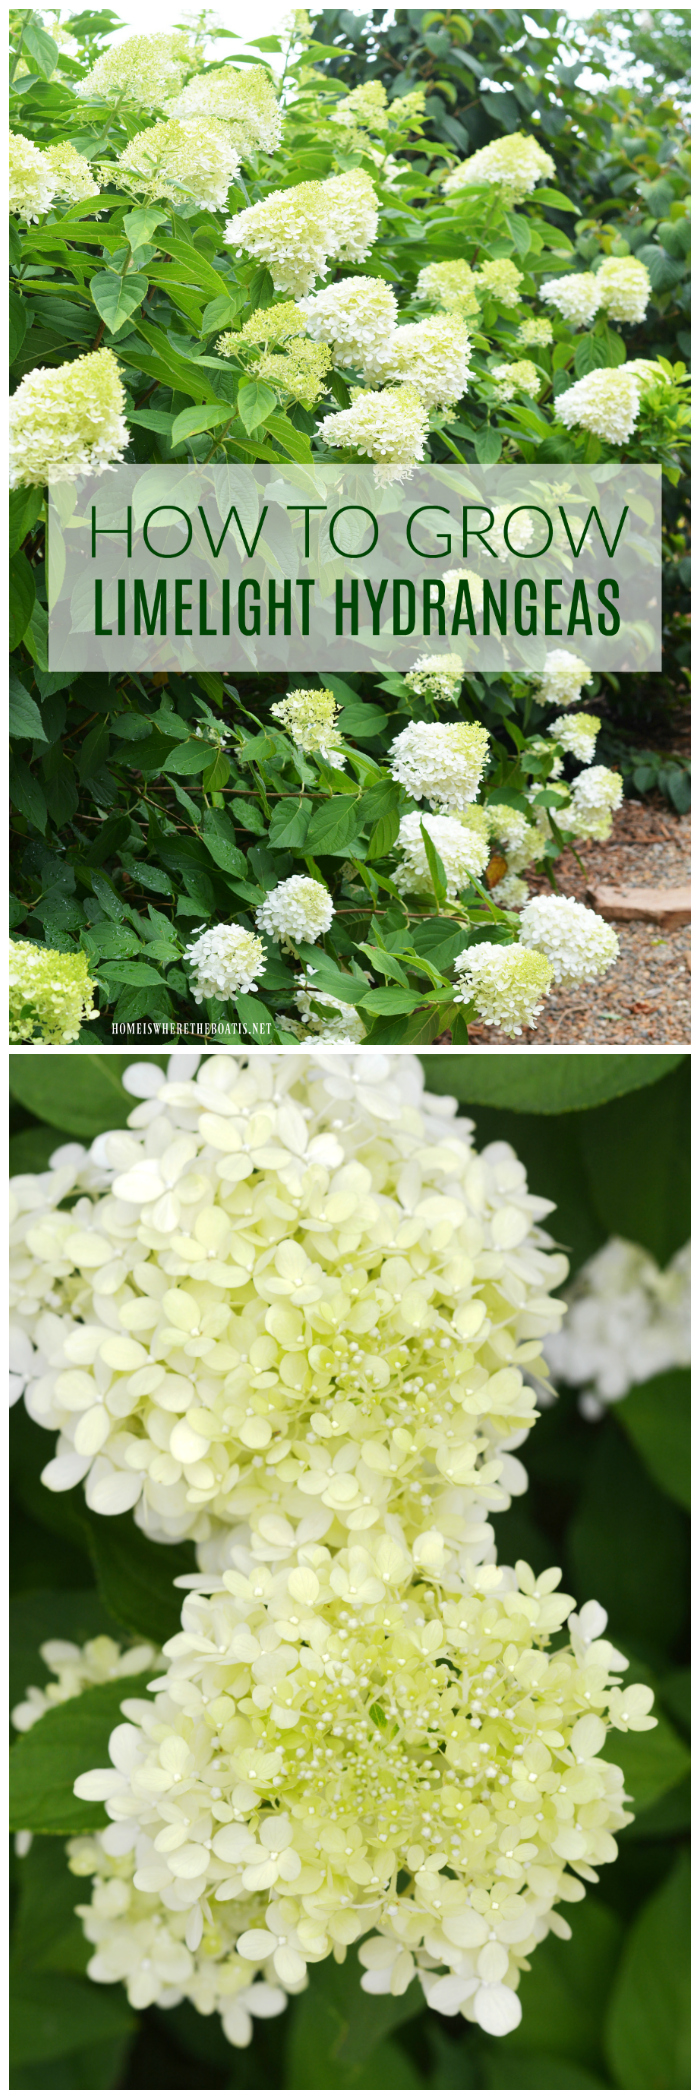 Plant this easy to grow, low maintenance shrub in your garden and enjoy beautiful cut and dried flowers too! | ©homeiswheretheboatis.net #summer #garden #hydrangea